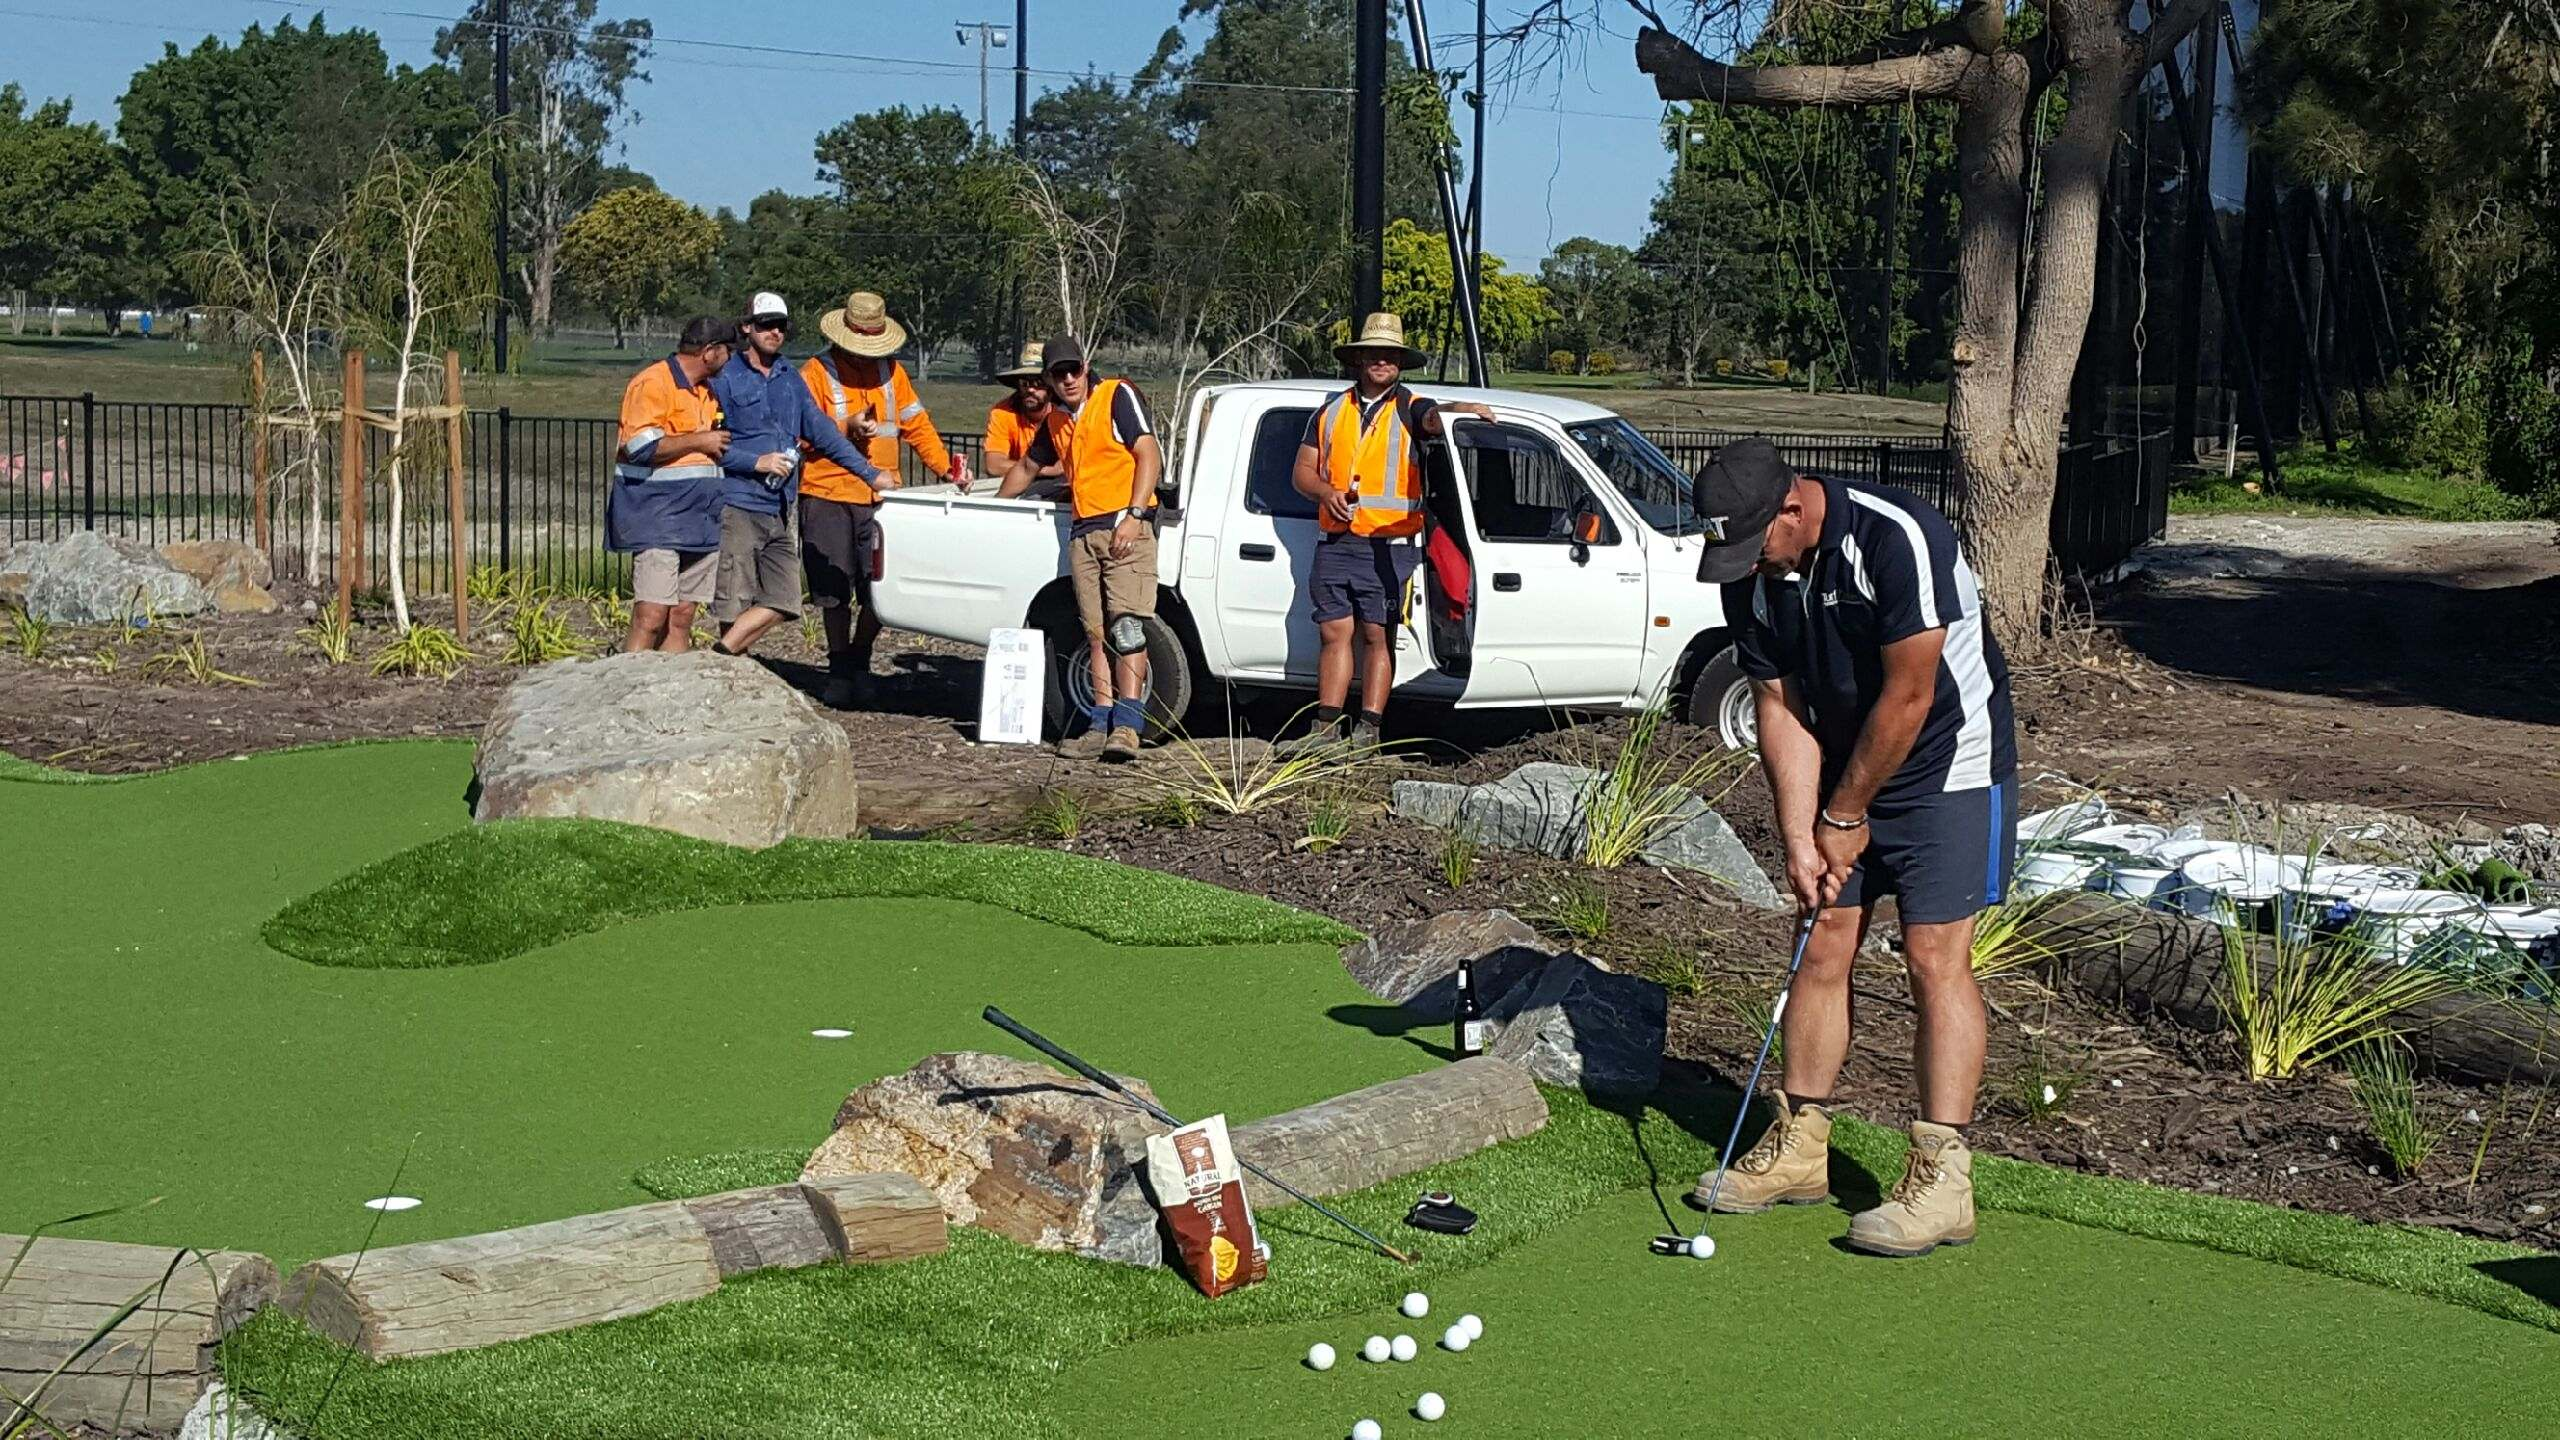 Mini Golf Construction, Miniature Golf Courses - Australia, SE Asia